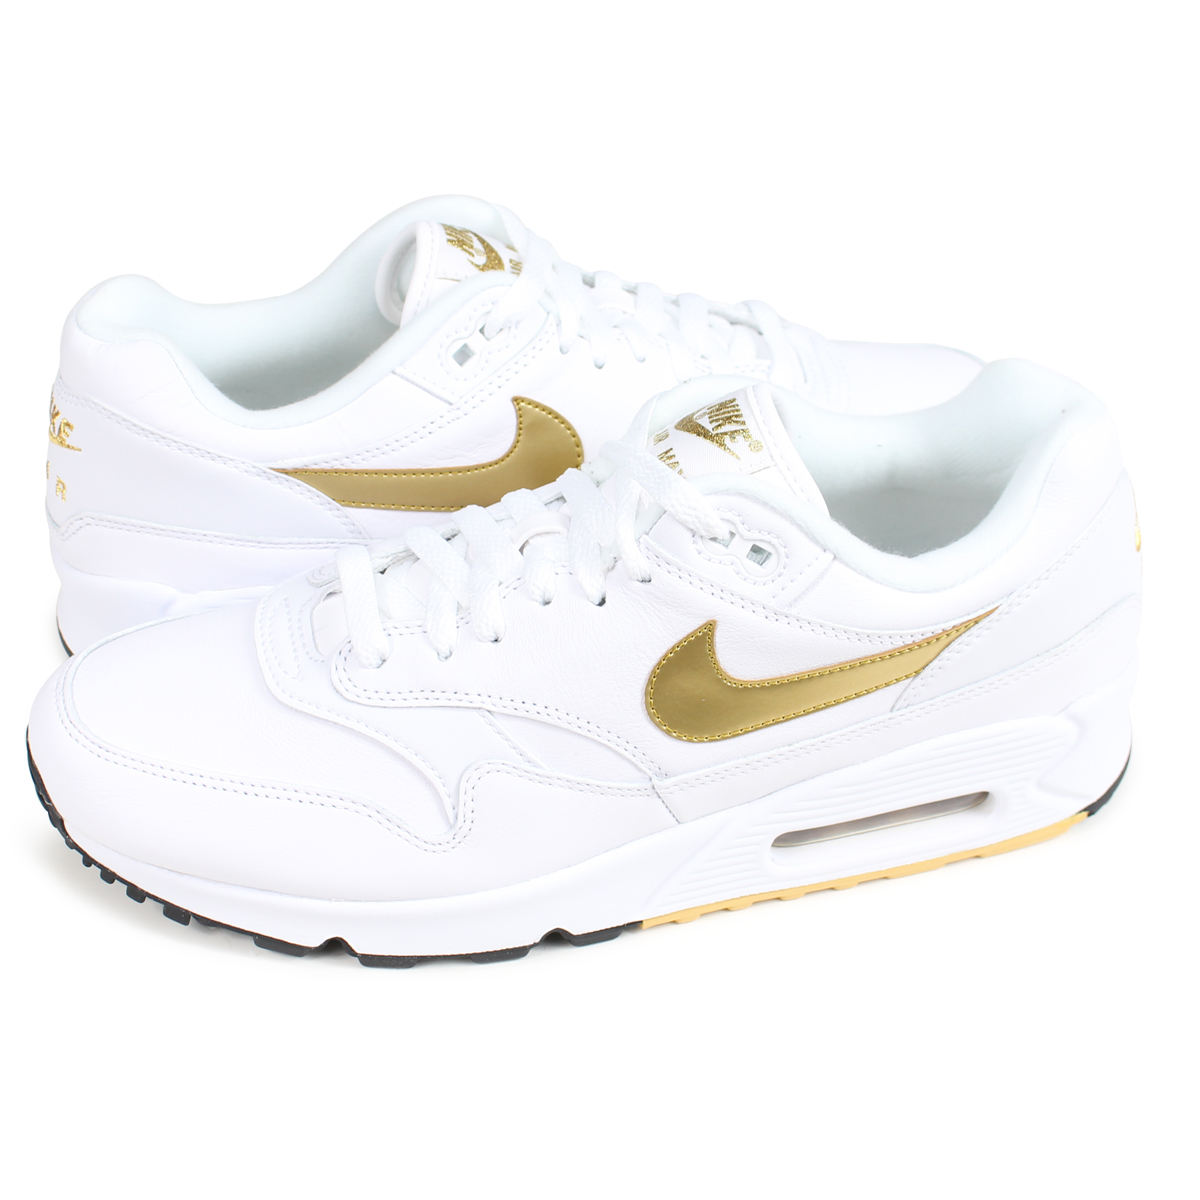 buy online 608a6 3c3d3 NIKE AIR MAX 90 1 Kie Ney AMAX 90 1 sneakers men AJ7695-102 white  load  planned Shinnyu load in reservation product 9 11 containing